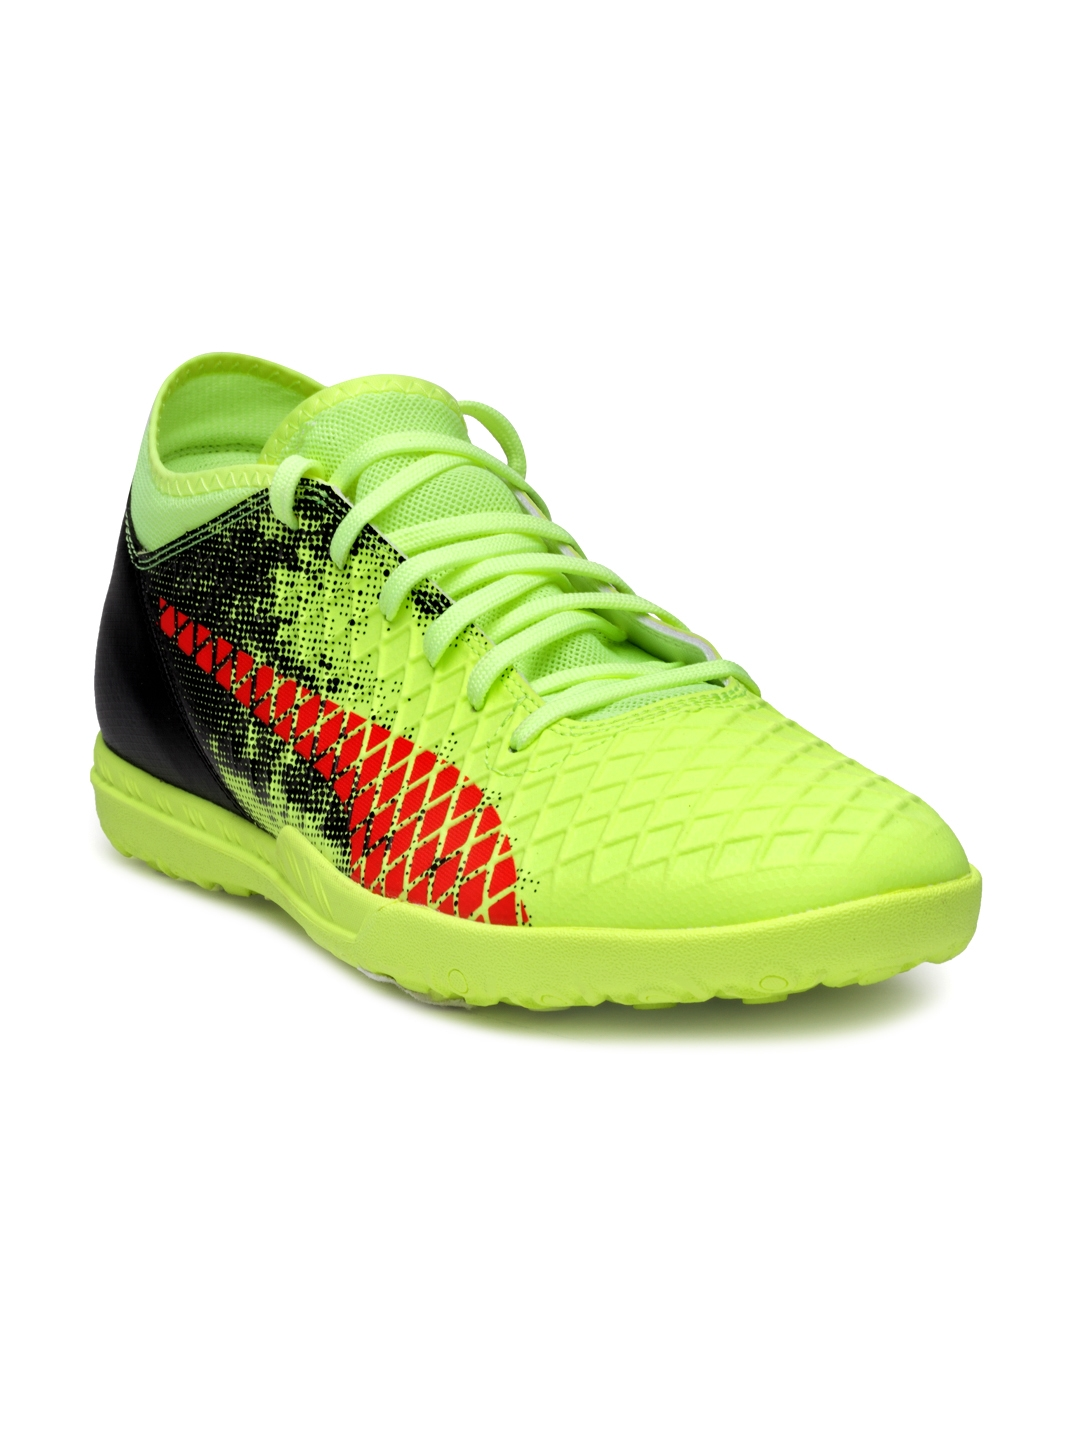 best service a6091 0ba09 Puma Men Fluorescent Green   Black Future 18.4 TT Football Shoes